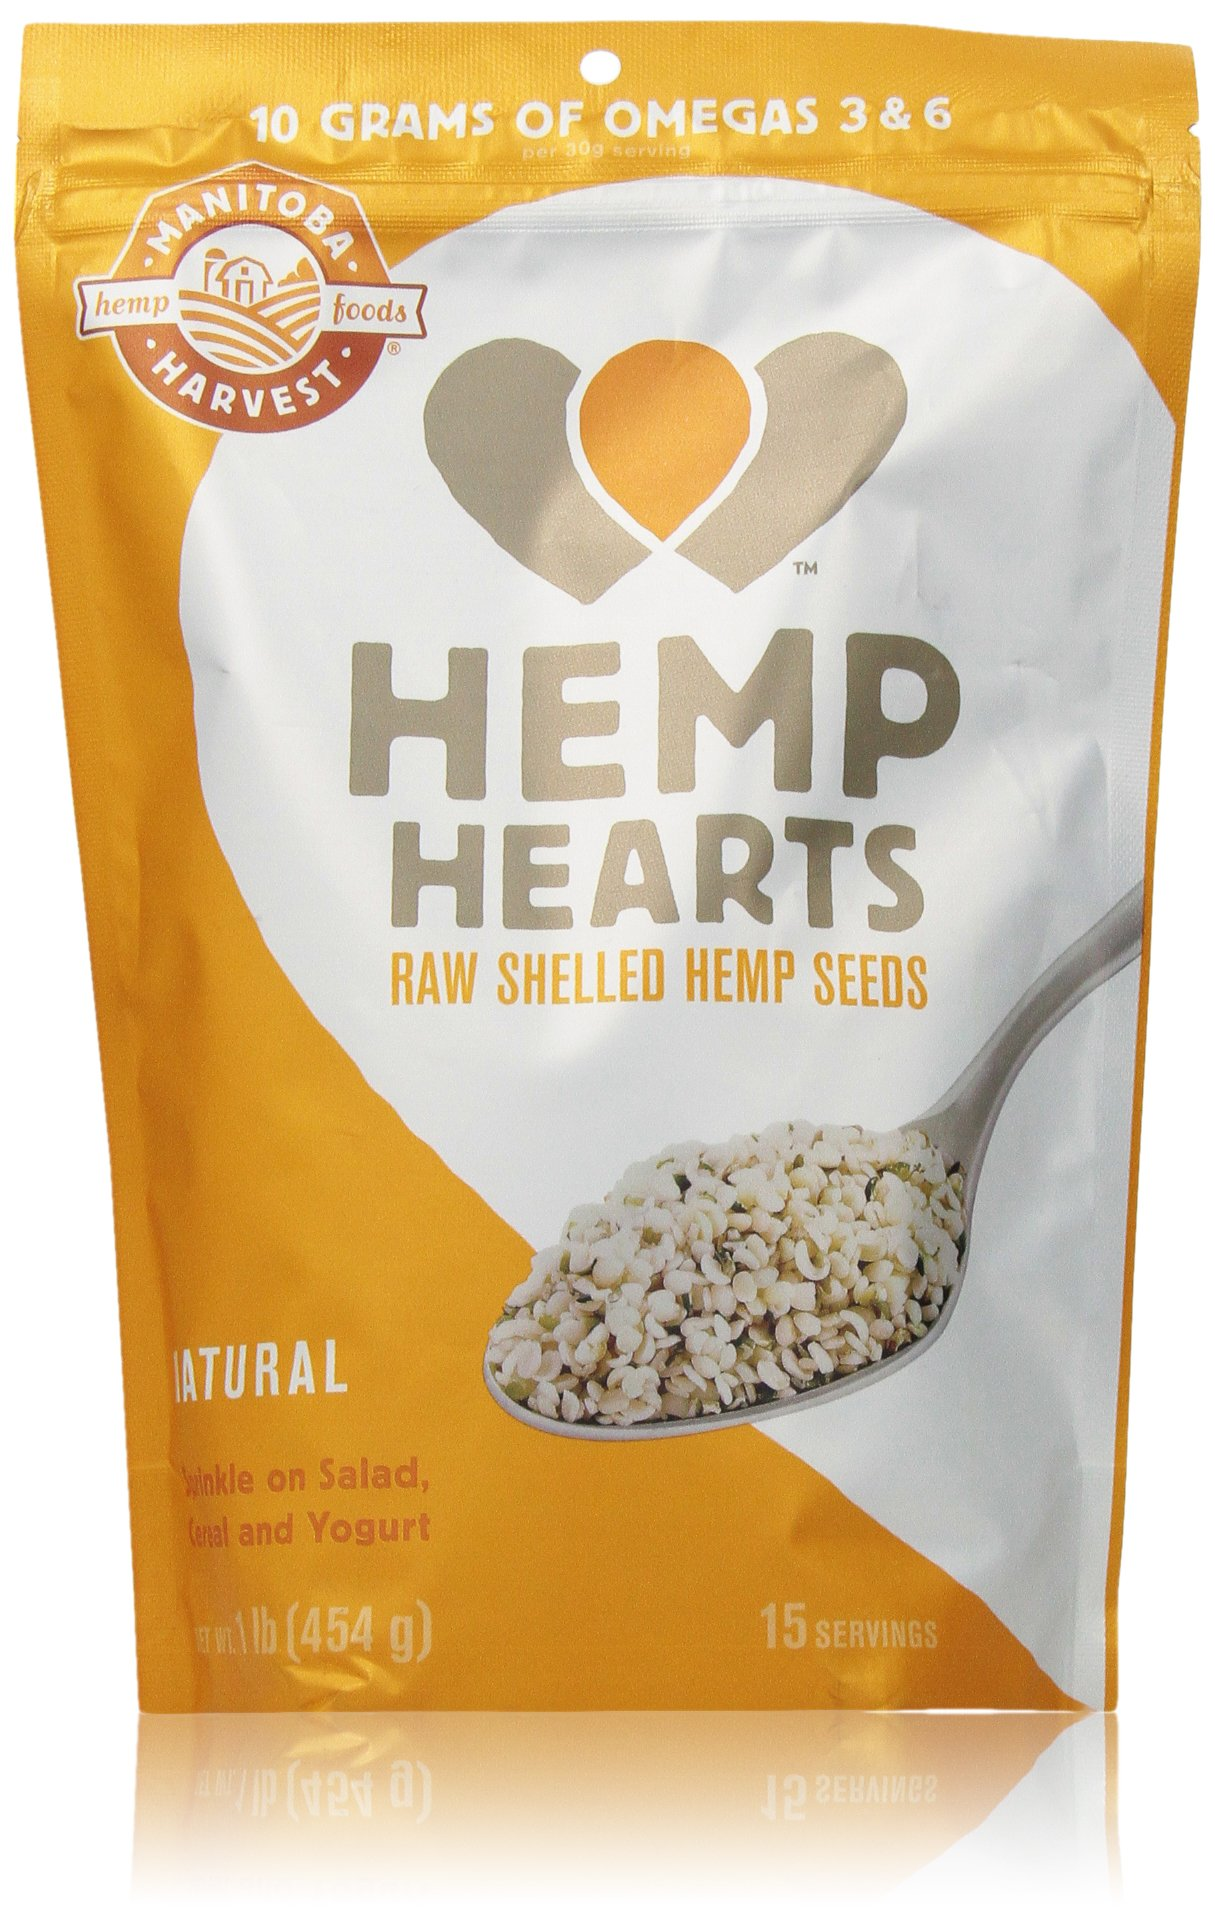 Manitoba Harvest Hemp Hearts Raw Shelled Hemp Seeds, 1lb; with 10g of Protein & Omegas per Serving